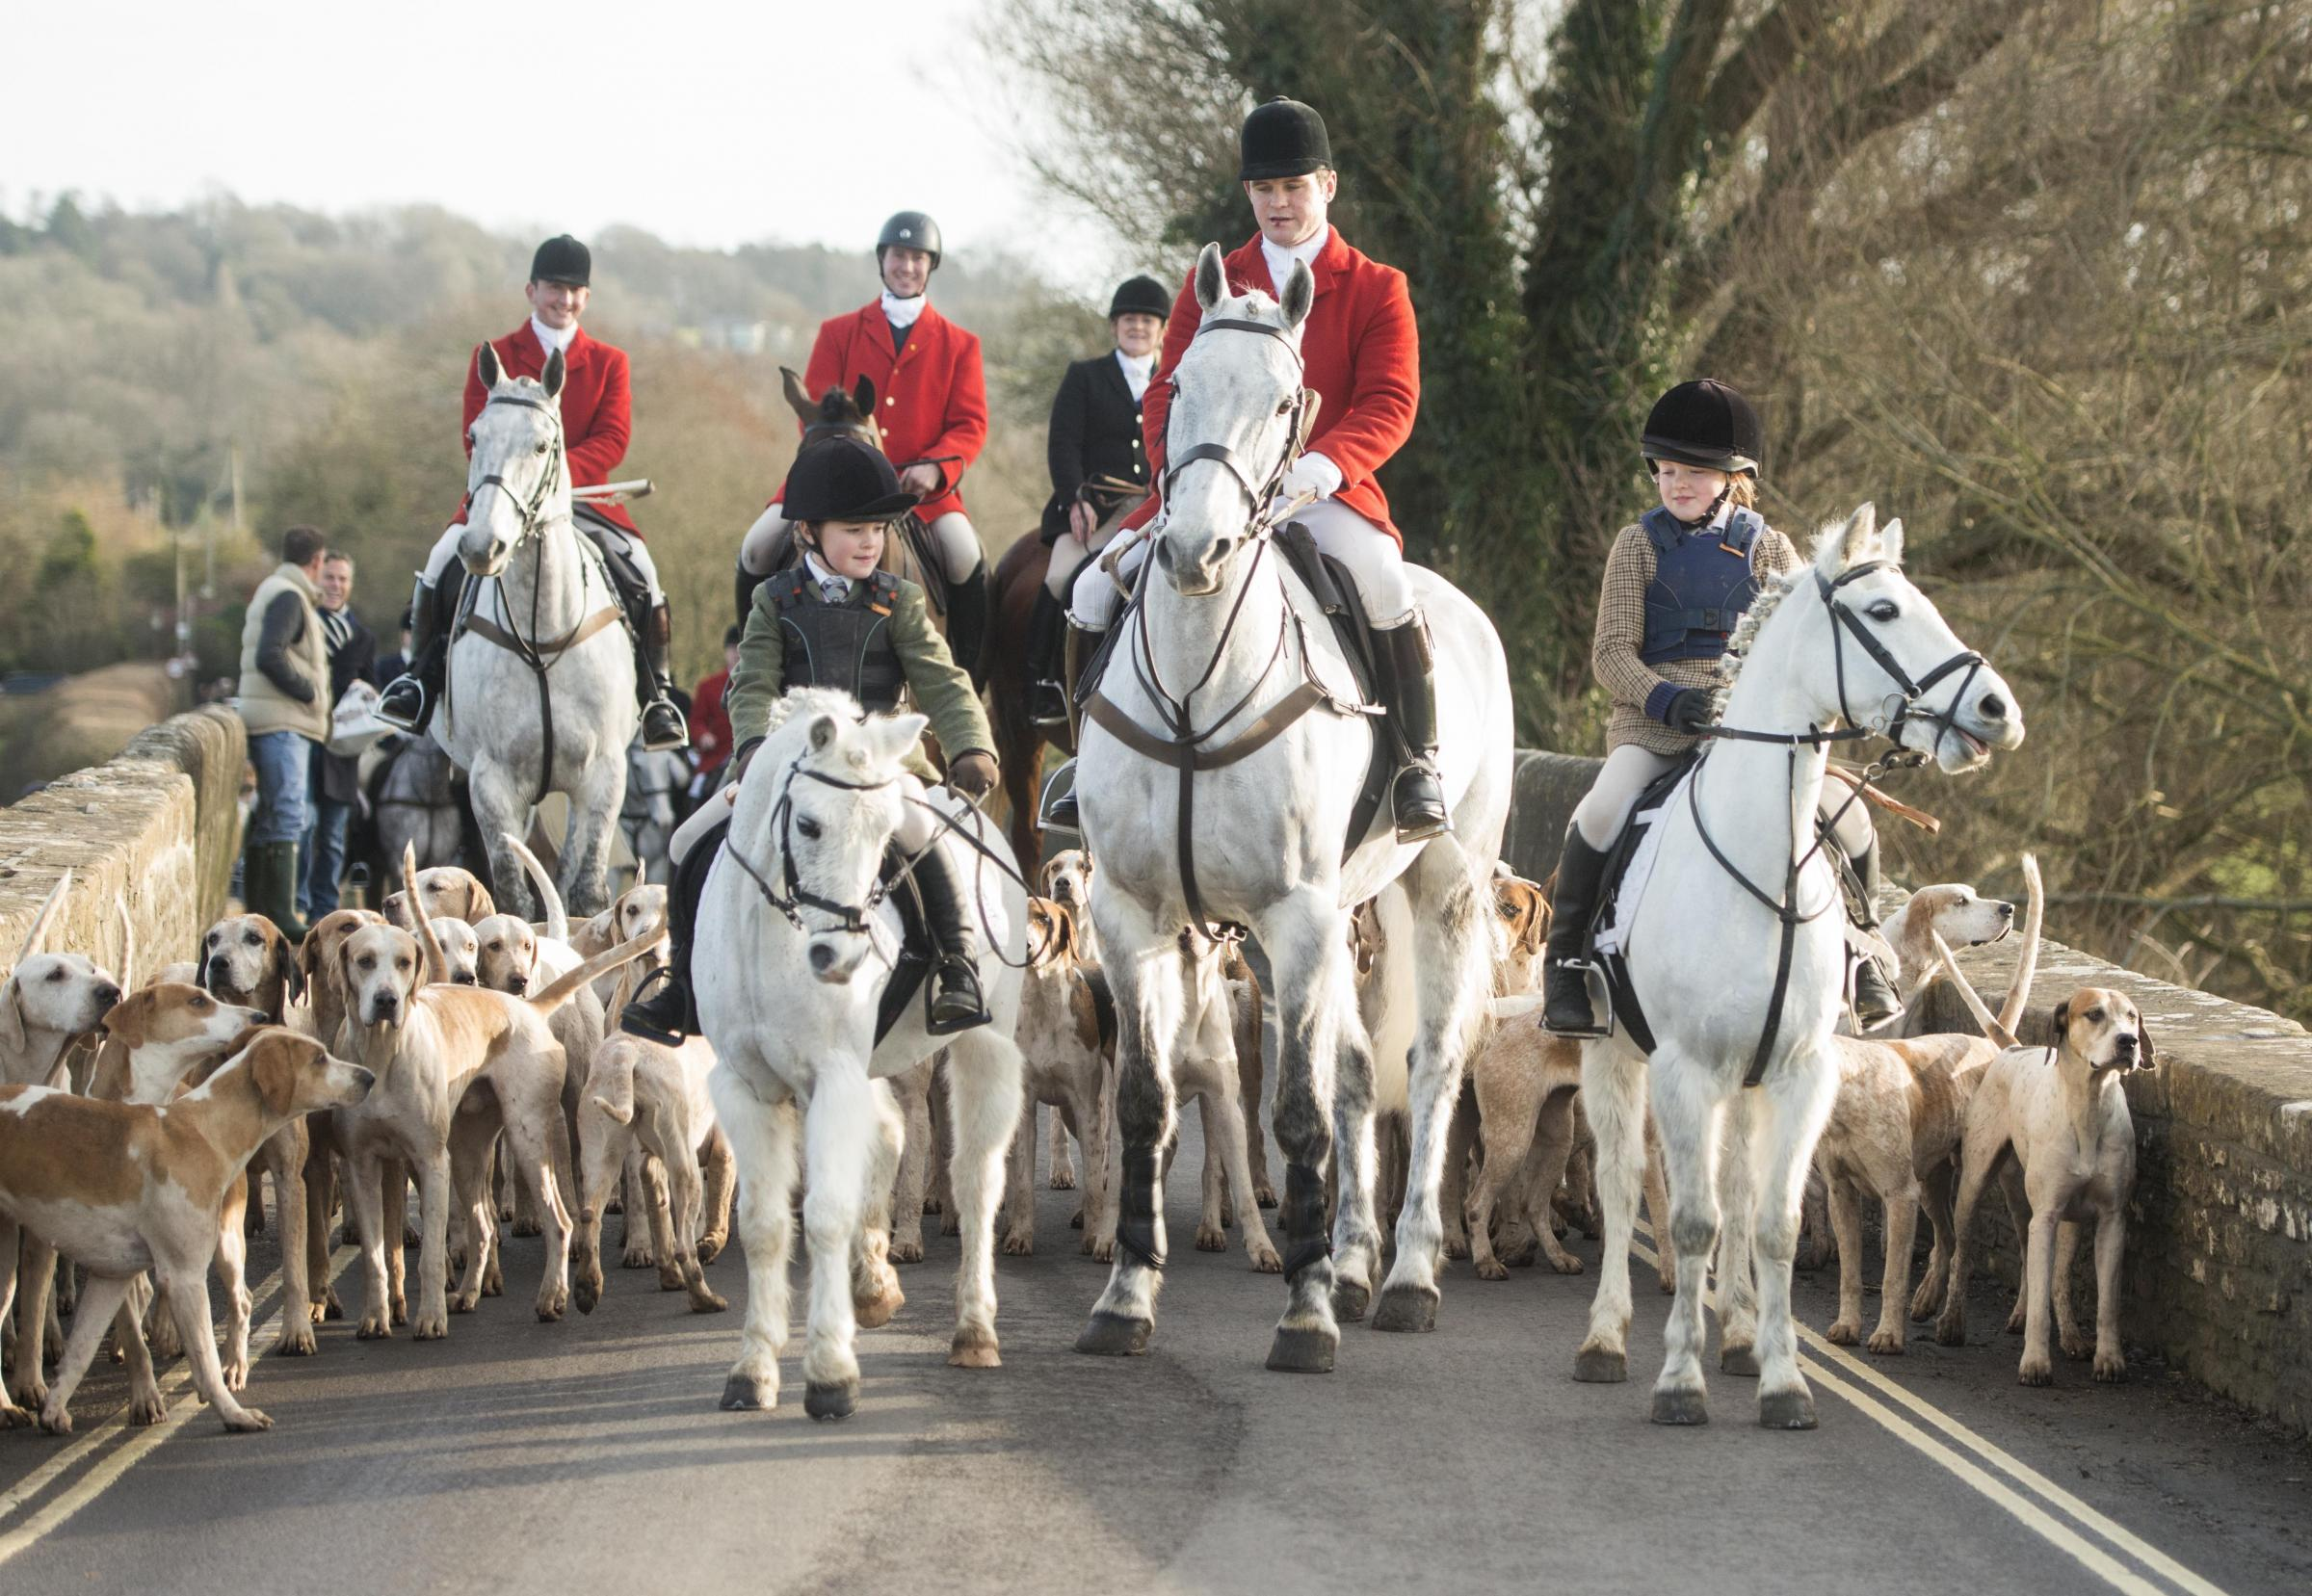 Lacock Hunt.The Avon Vale Hunt ride out on the traditional Boxing Day hunt in Lacock,  Pictured at the Pack Horse Bridge.Pics Trevor Porter 58053 5.